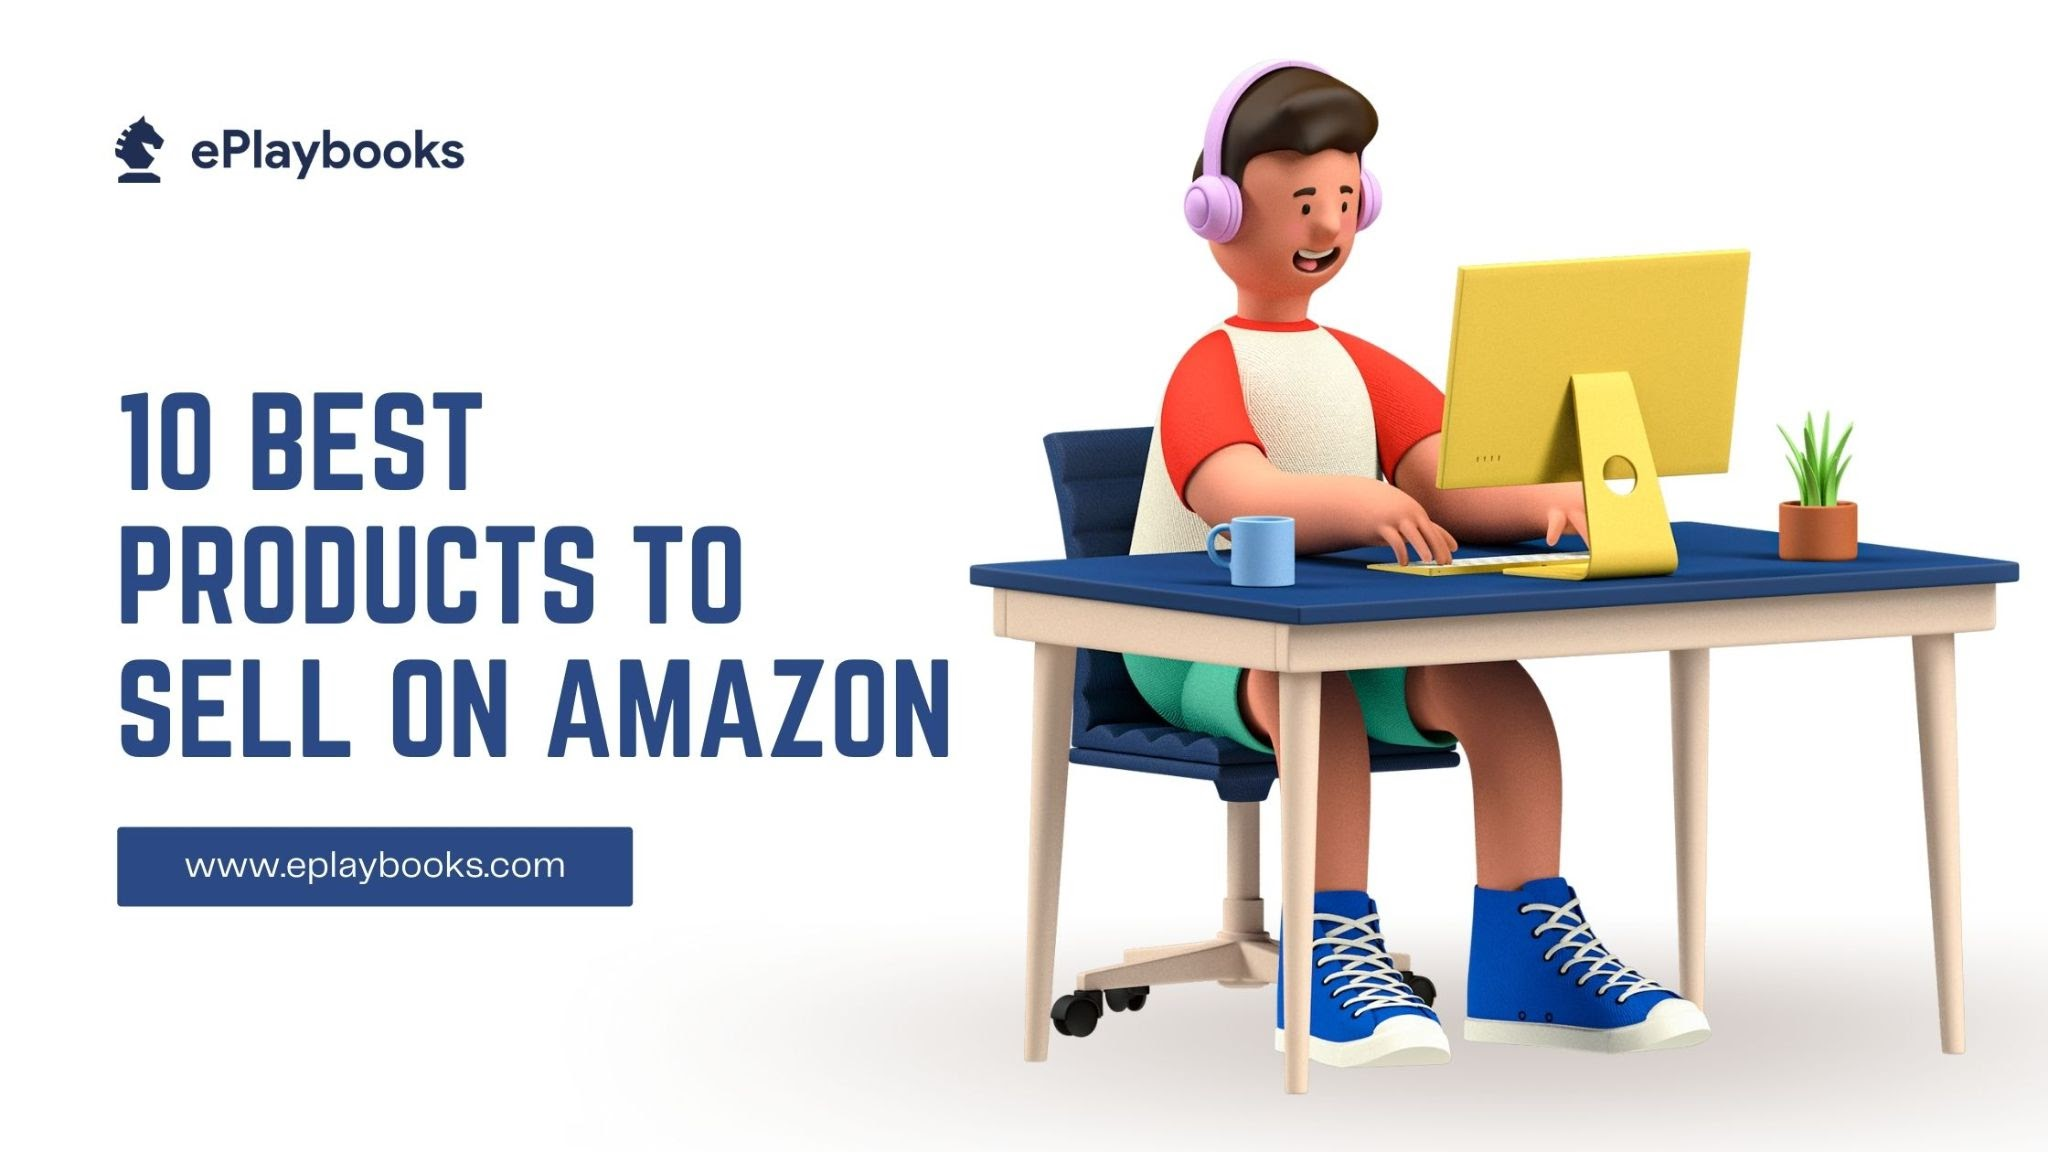 10 Best Products to Sell on Amazon